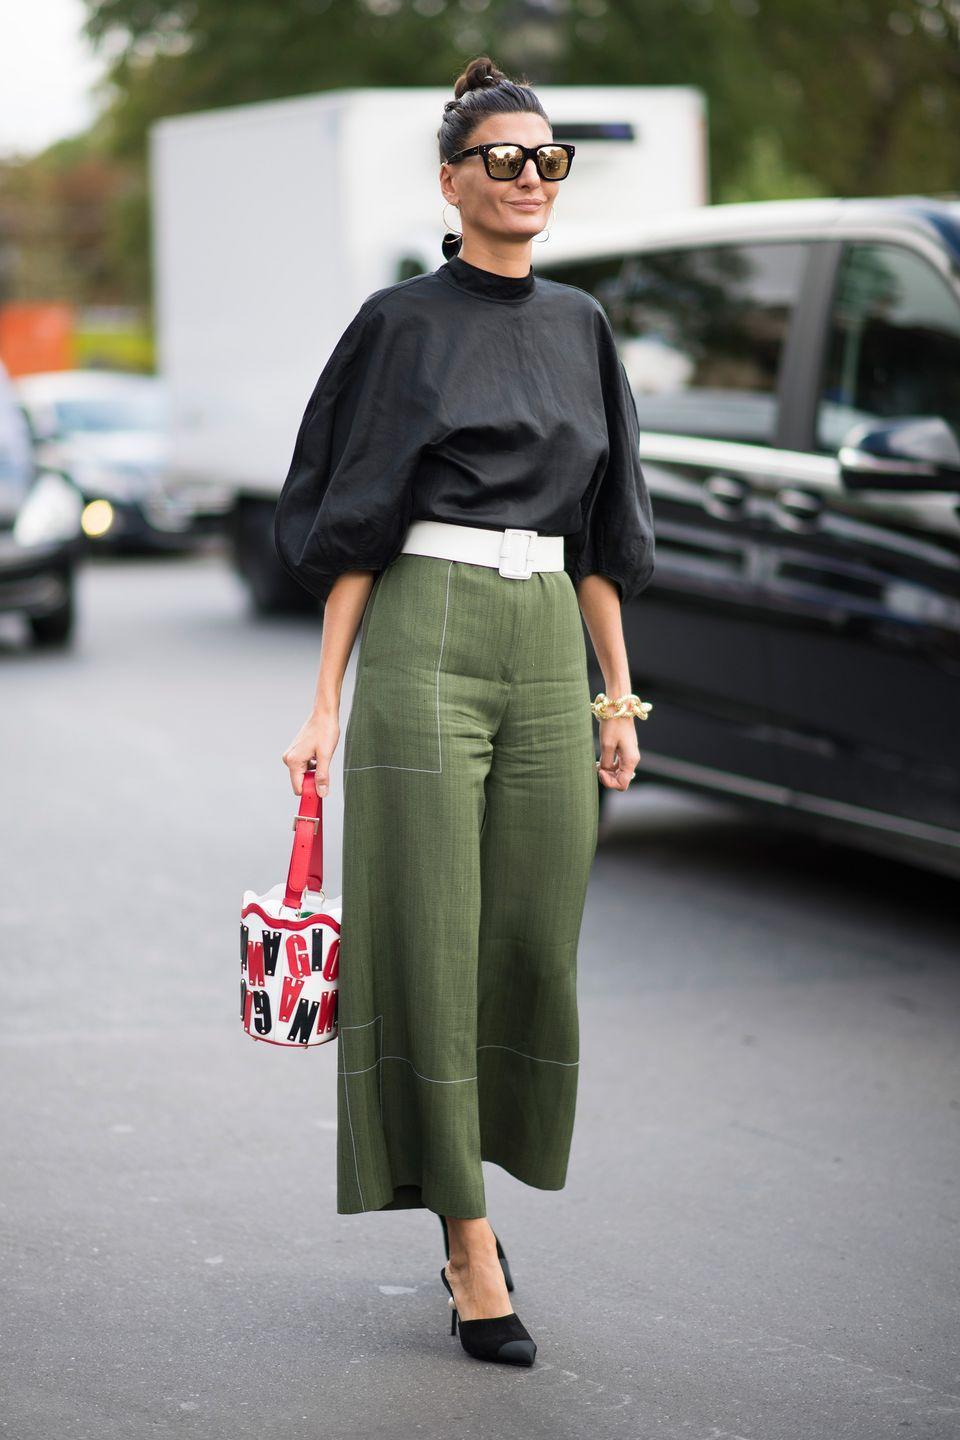 <p>In one of her more understated looks, Battaglia created a Balenciga-inspired shape in her cropped khaki culottes and high-neck black shirt in September 2016. She added signature playfulness with a colourful logo bucket bag.</p>